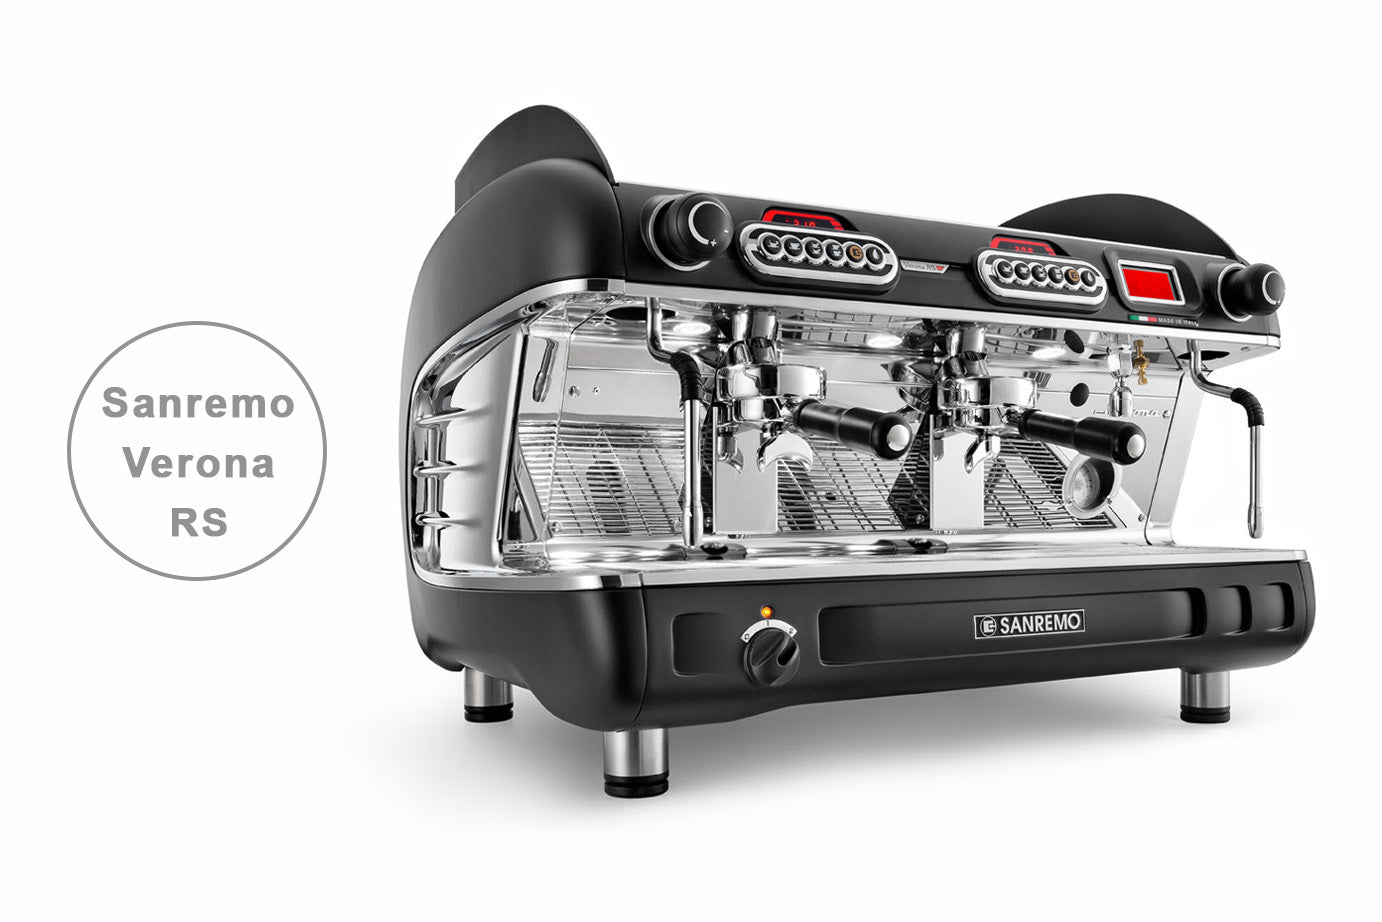 Sanremo verona rs espresso machine velo coffee roasters